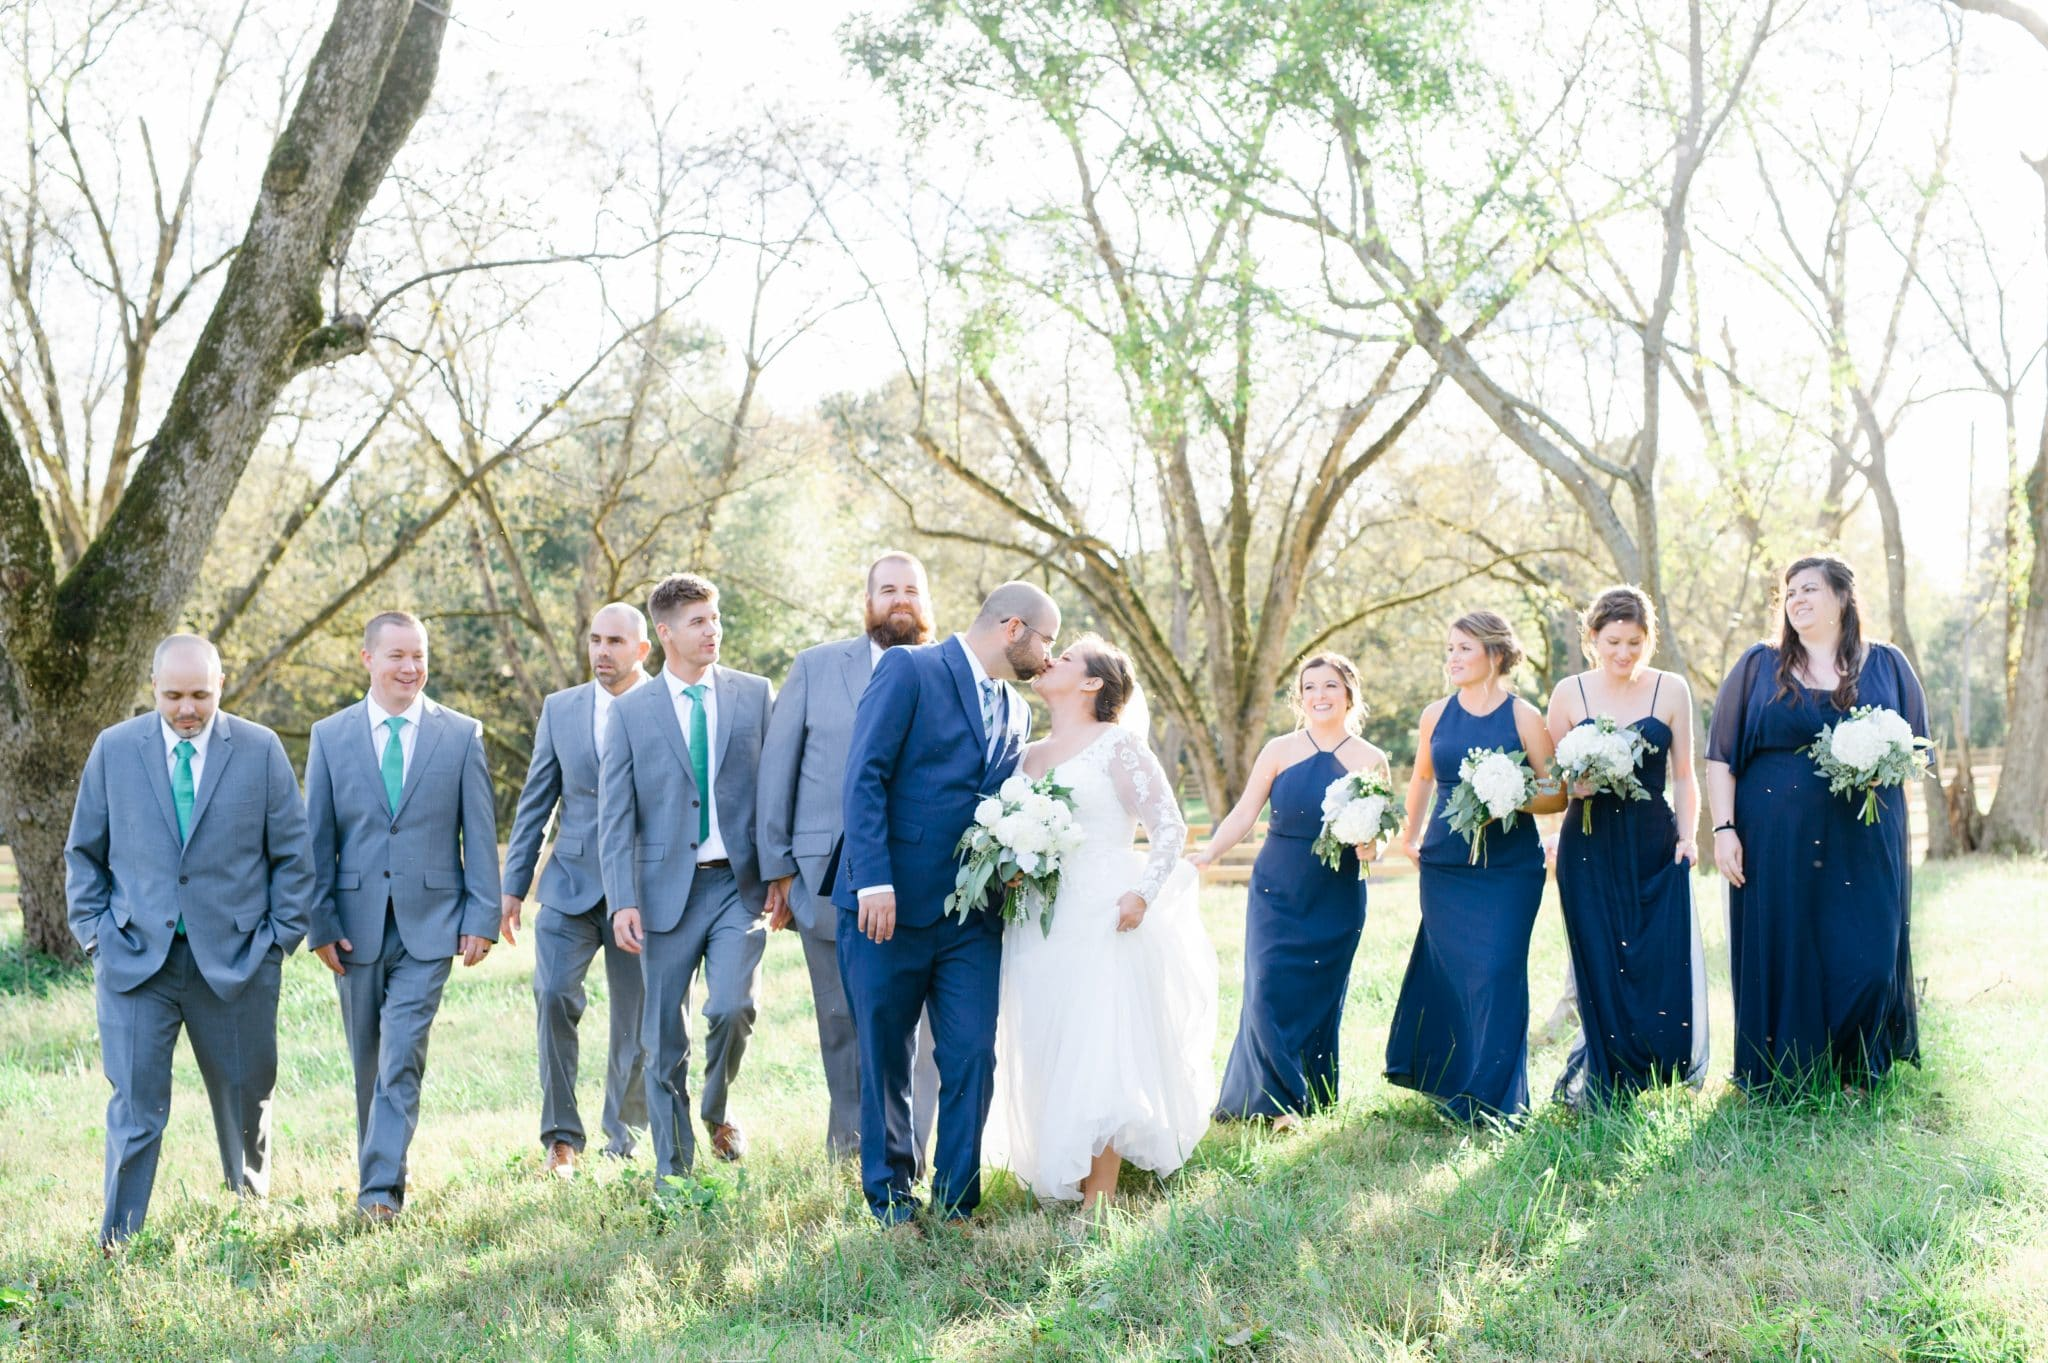 An Easy Guide To Picking Out Your Wedding Colors